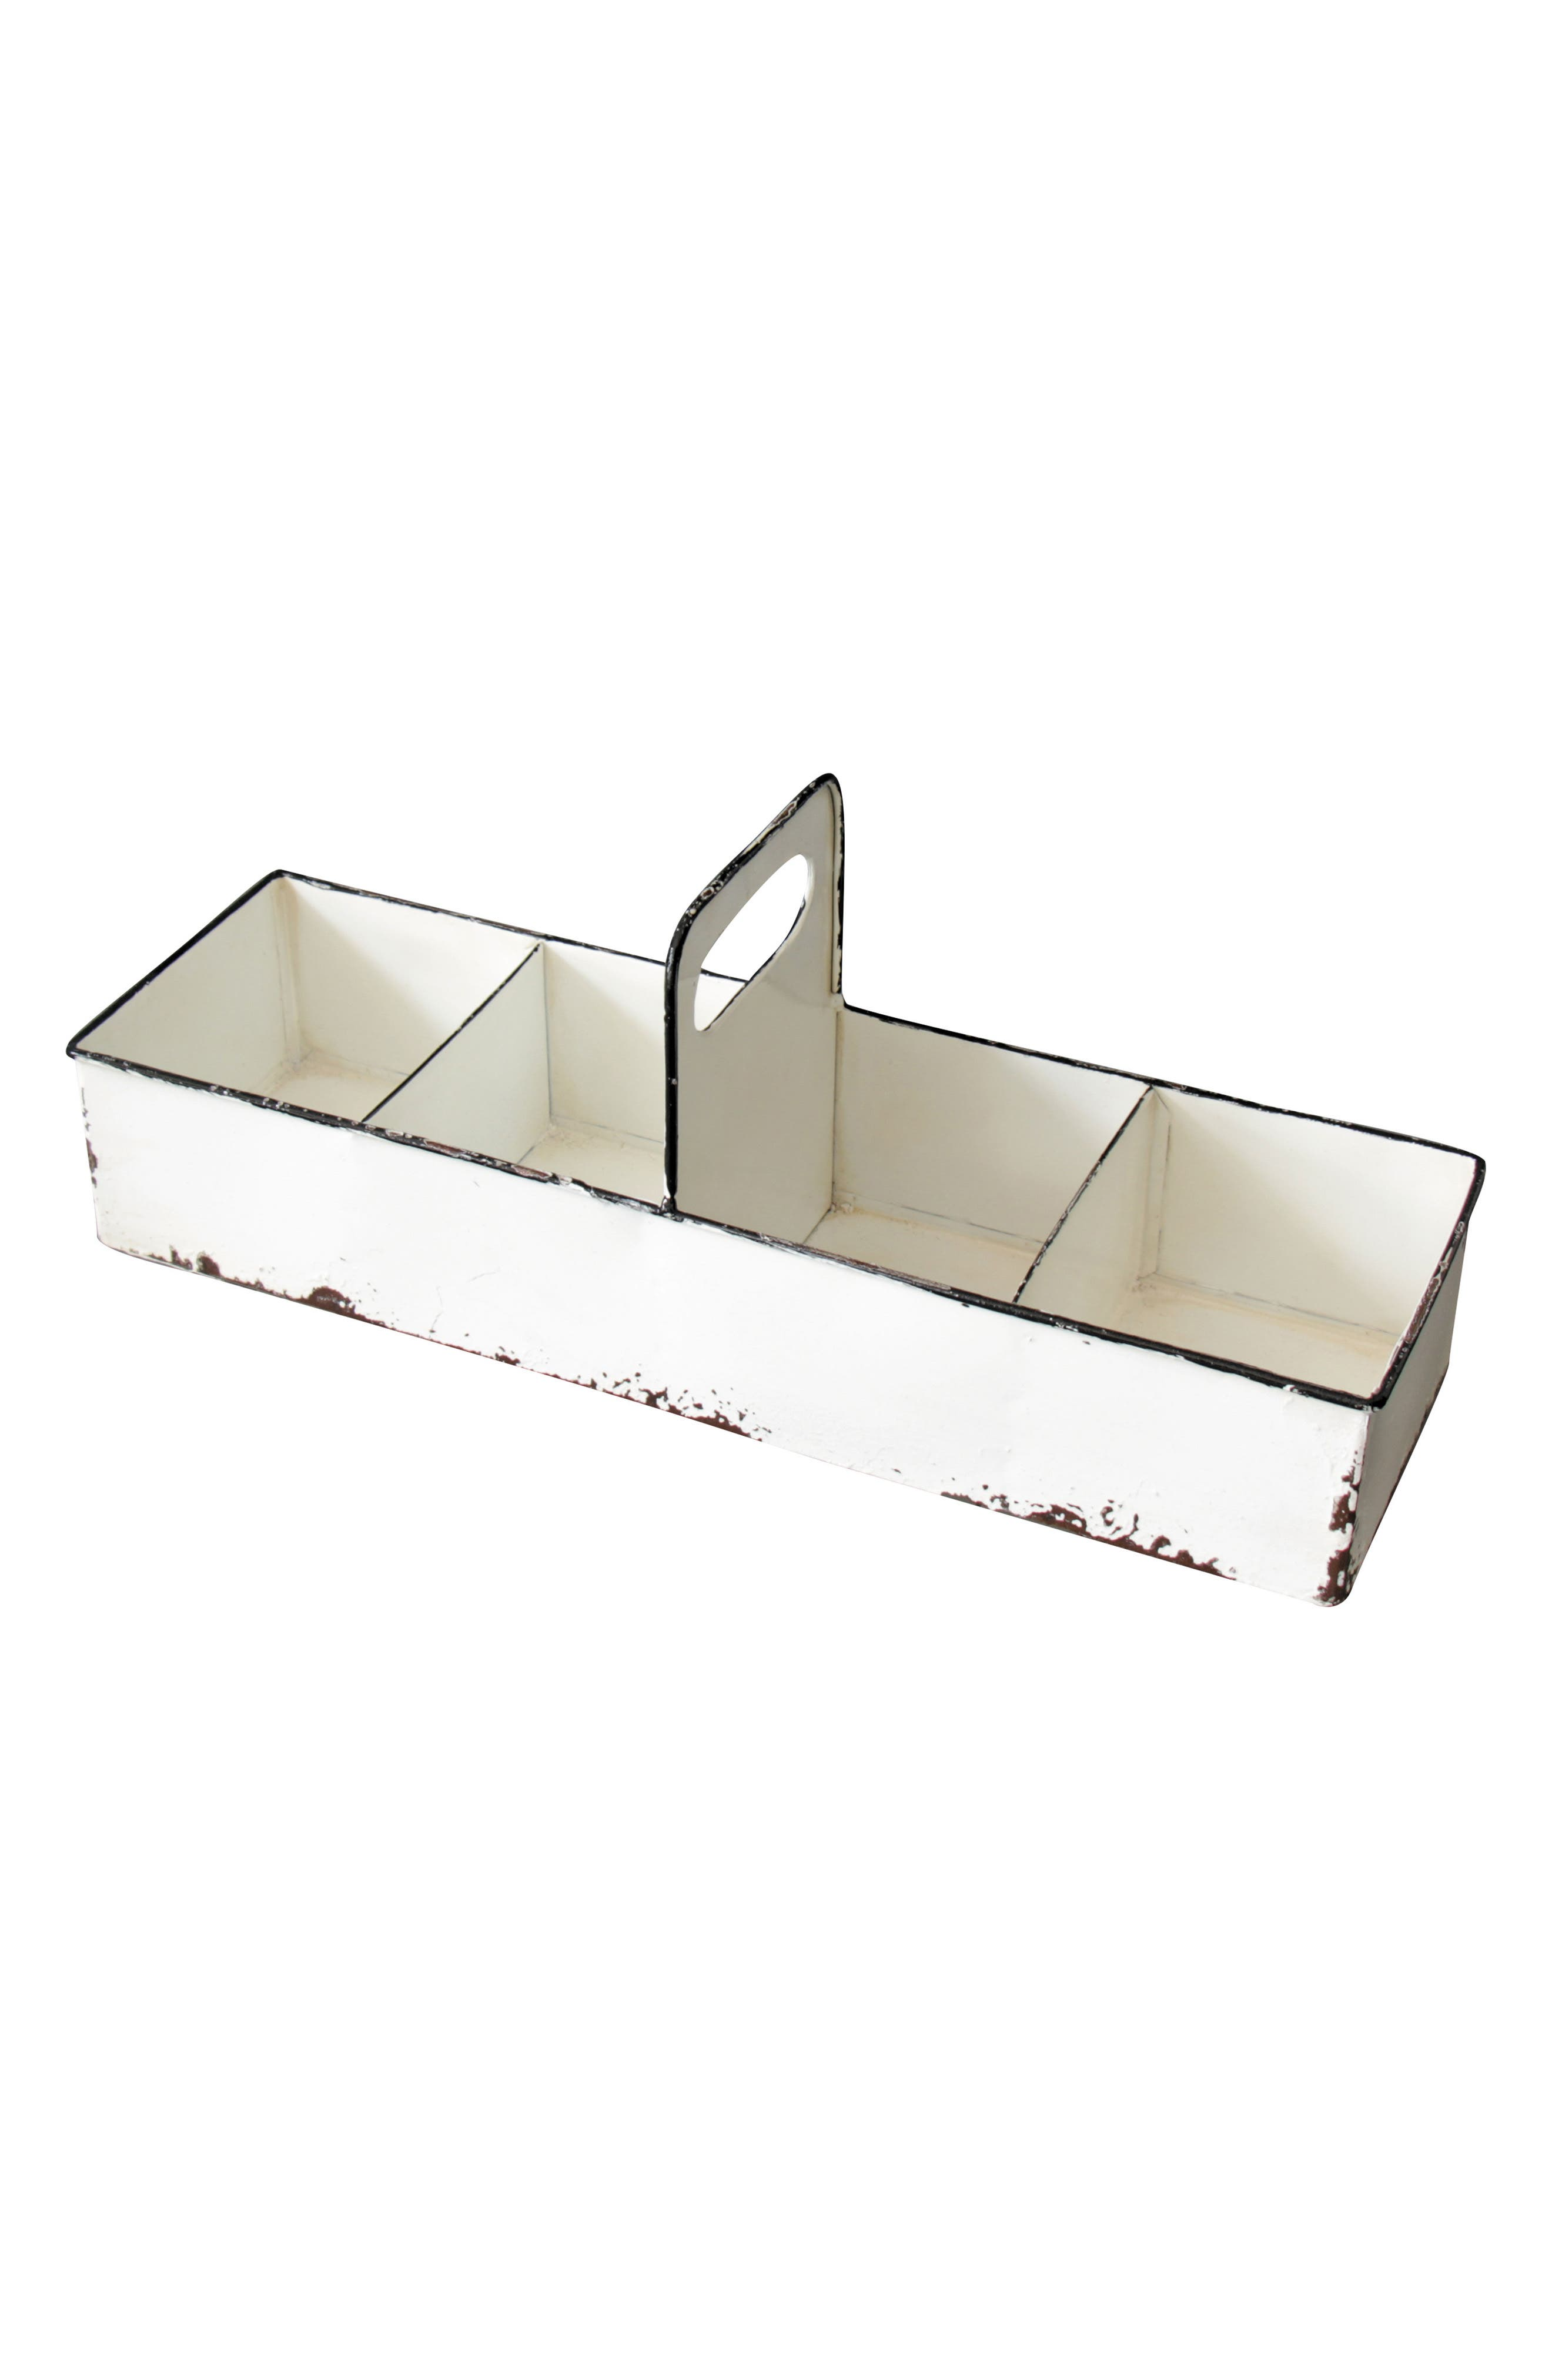 Slotted Enamel Tray,                         Main,                         color, Metal